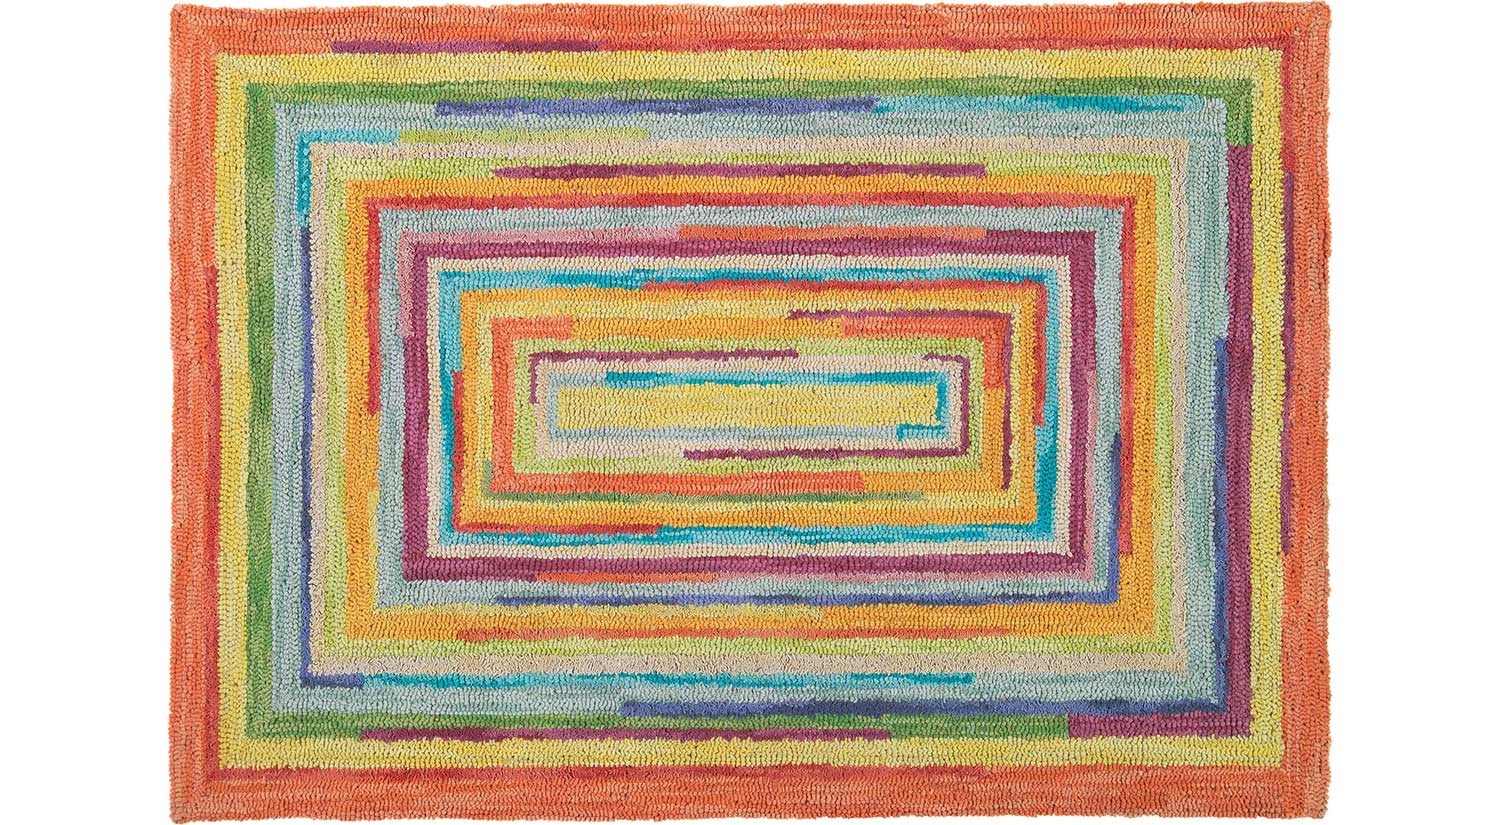 colorful rugs concentric square rugs concentric ... OFBUSFU